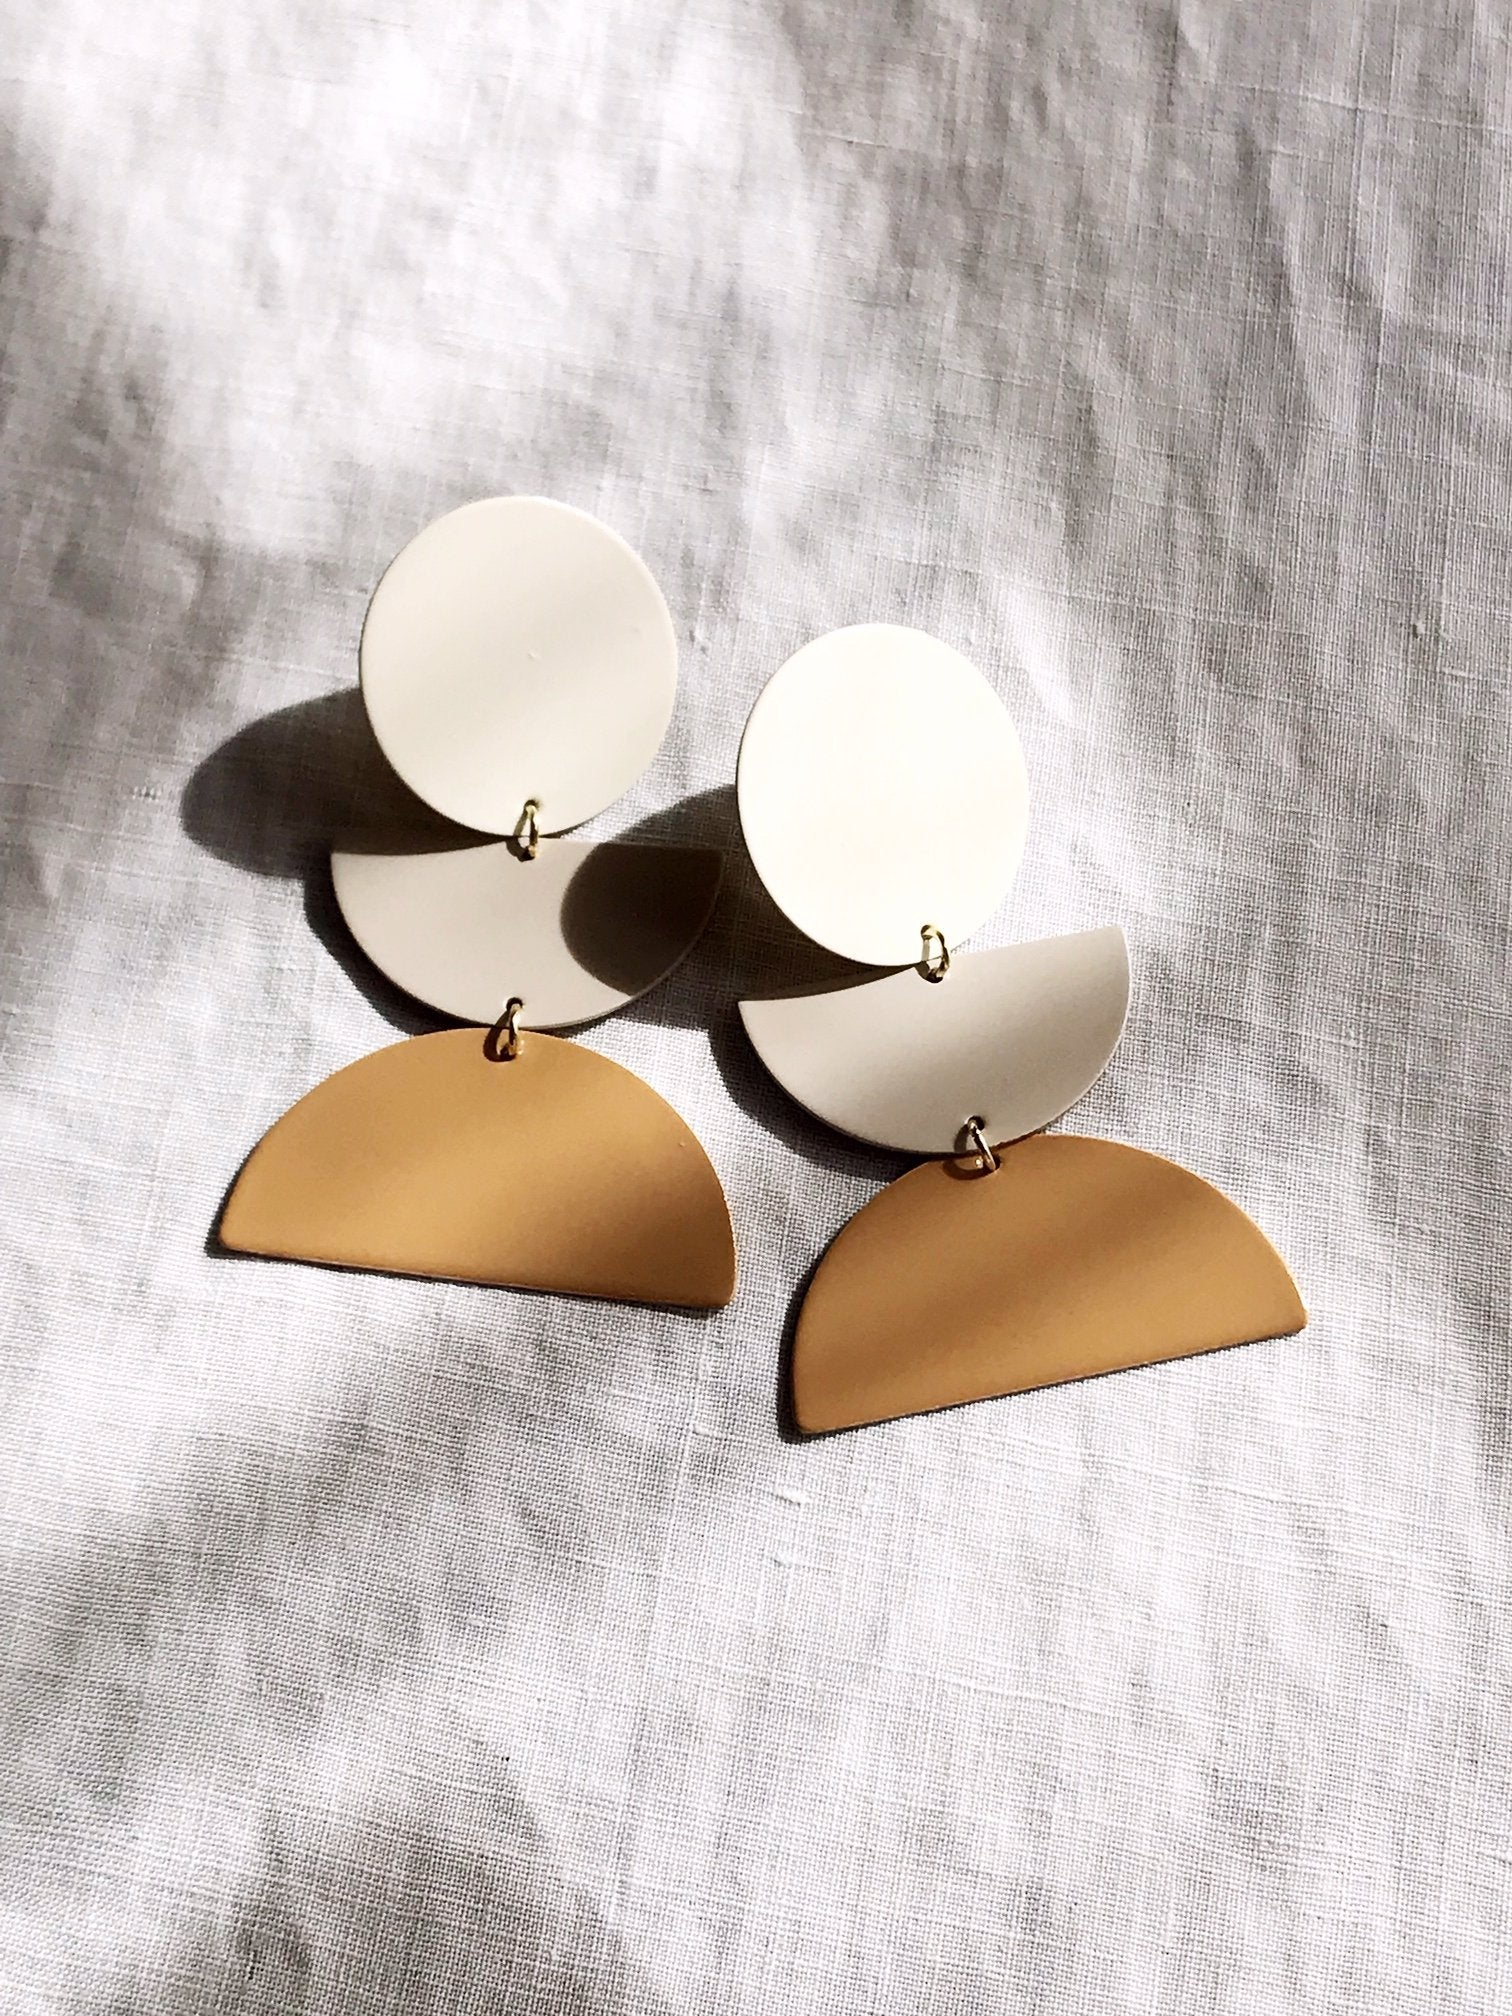 The Sunset Earrings by Pearl and Ivy Studio